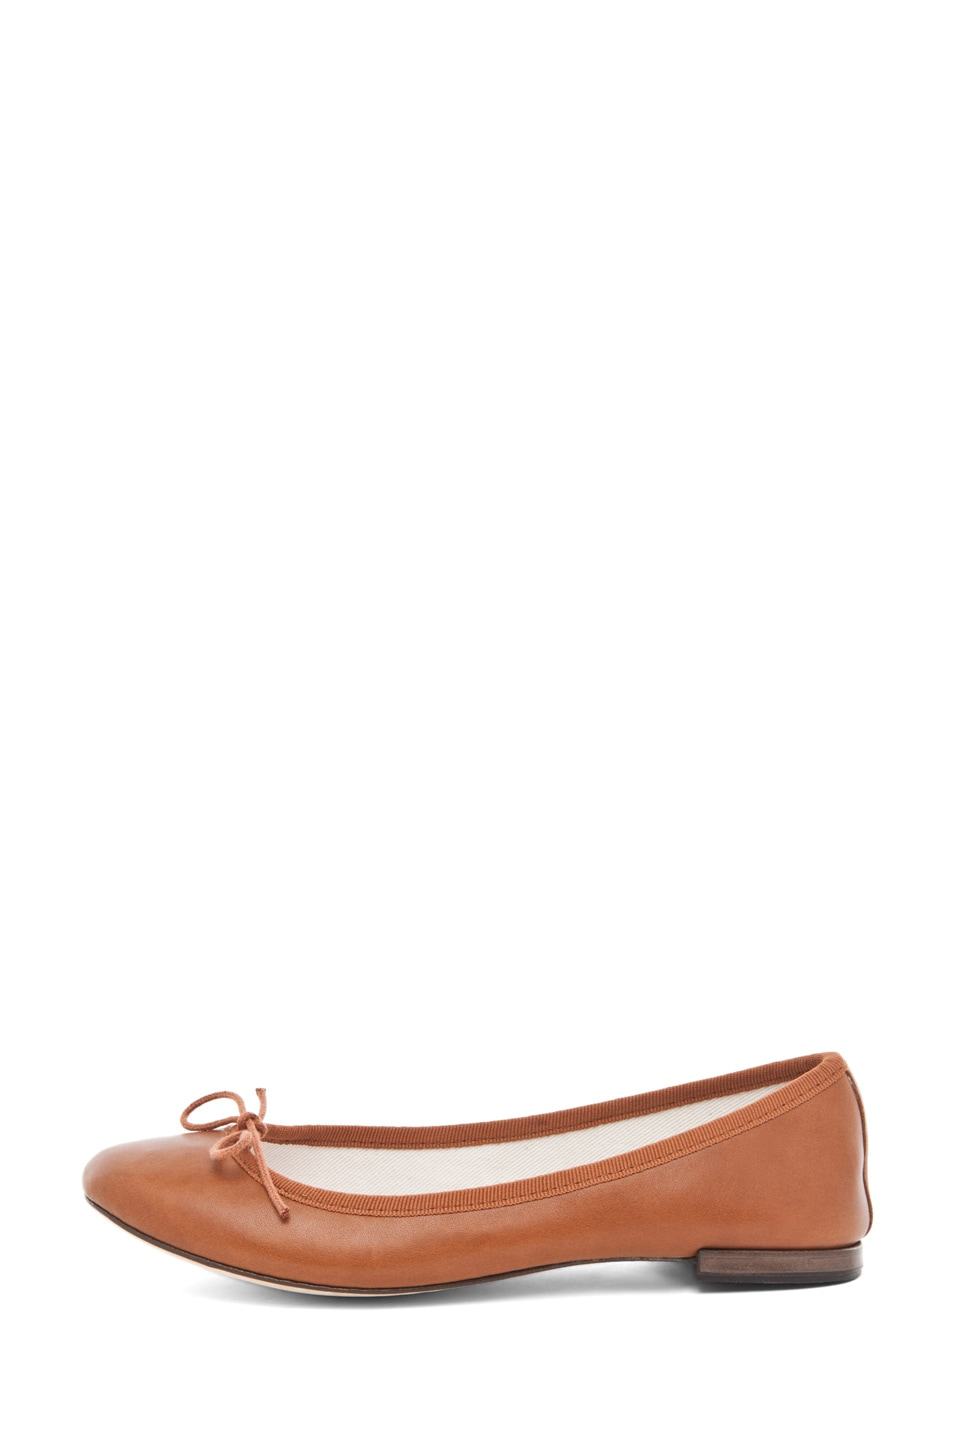 Image 1 of Repetto Leather Flat in Cognac